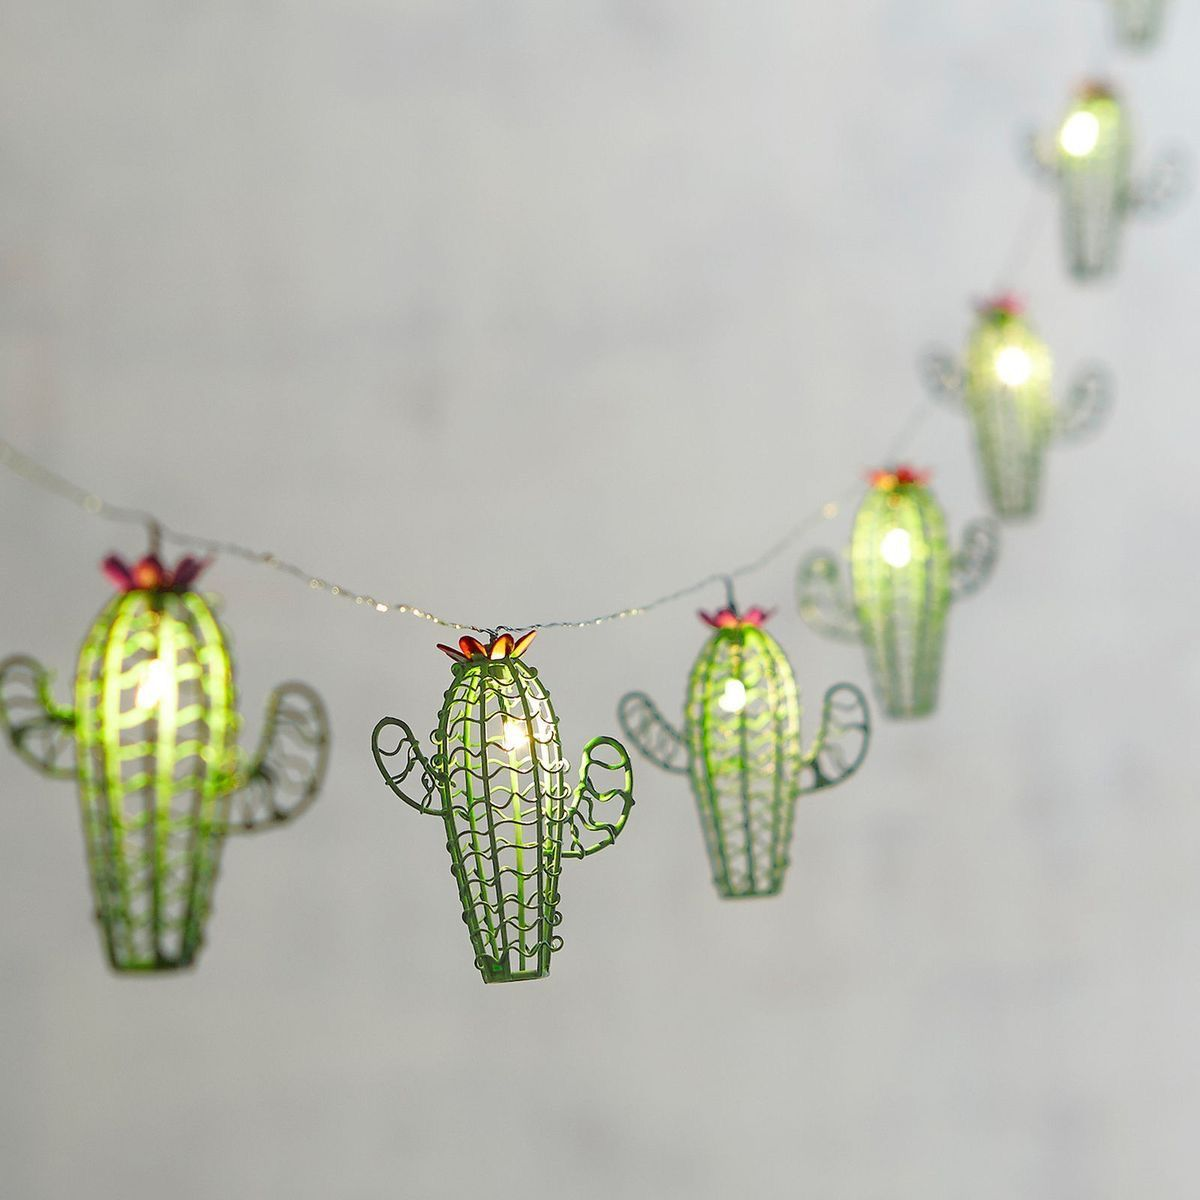 Cactus lights for those summer vibes